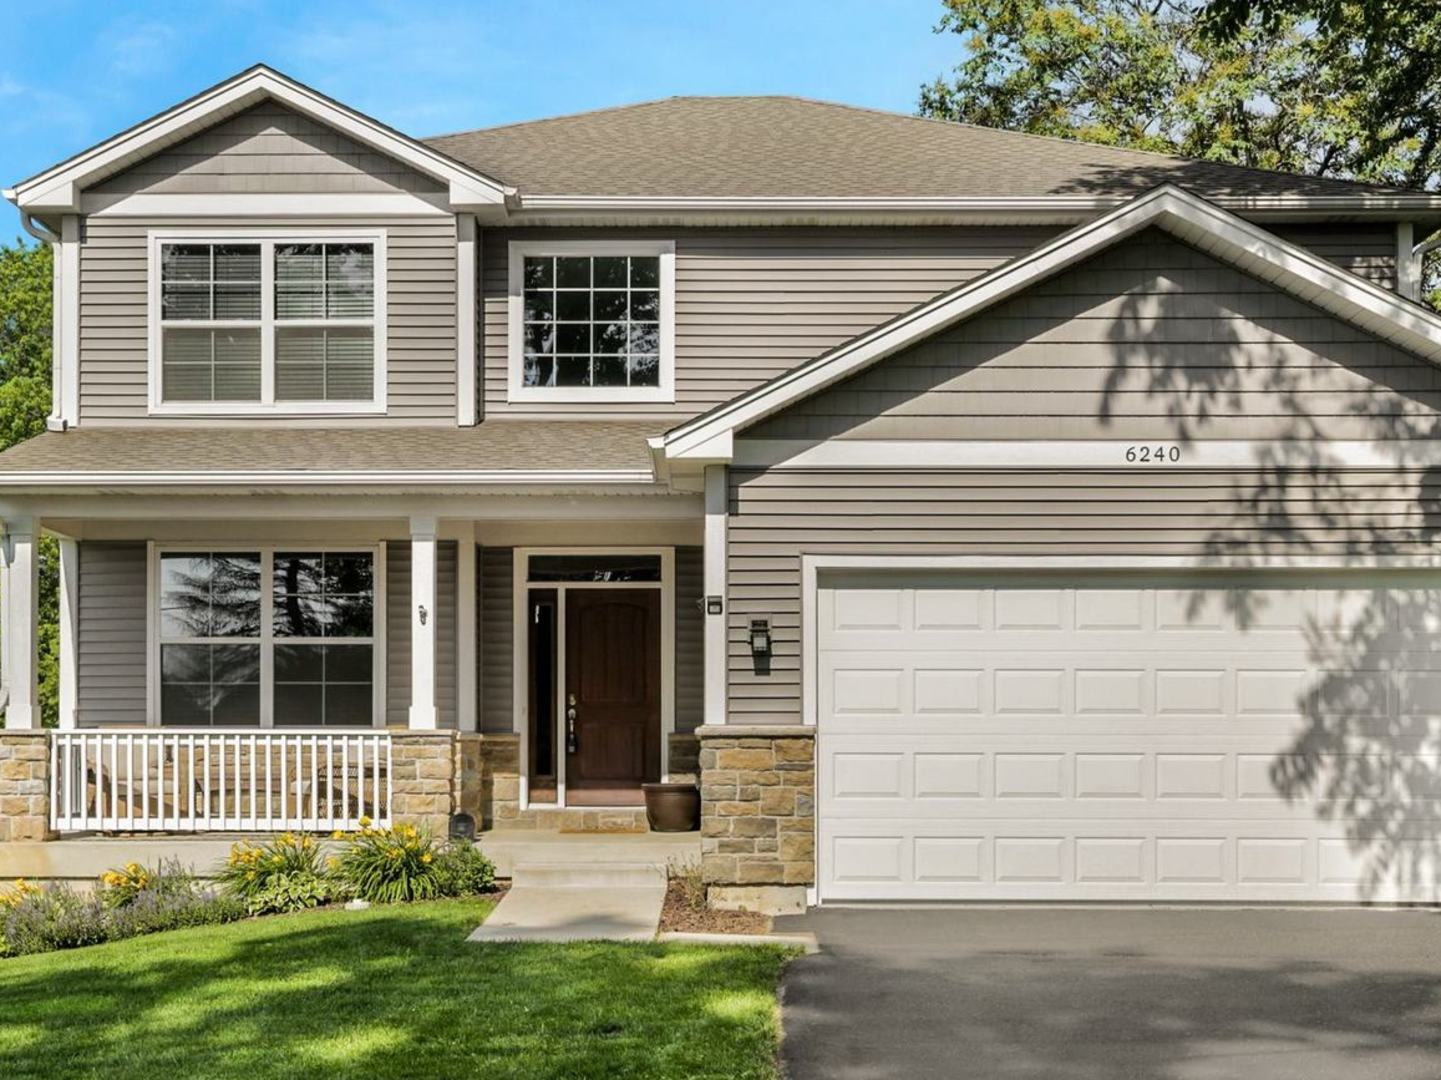 Photo for 6240 Dunham Road, Downers Grove, IL 60516 (MLS # 10535288)